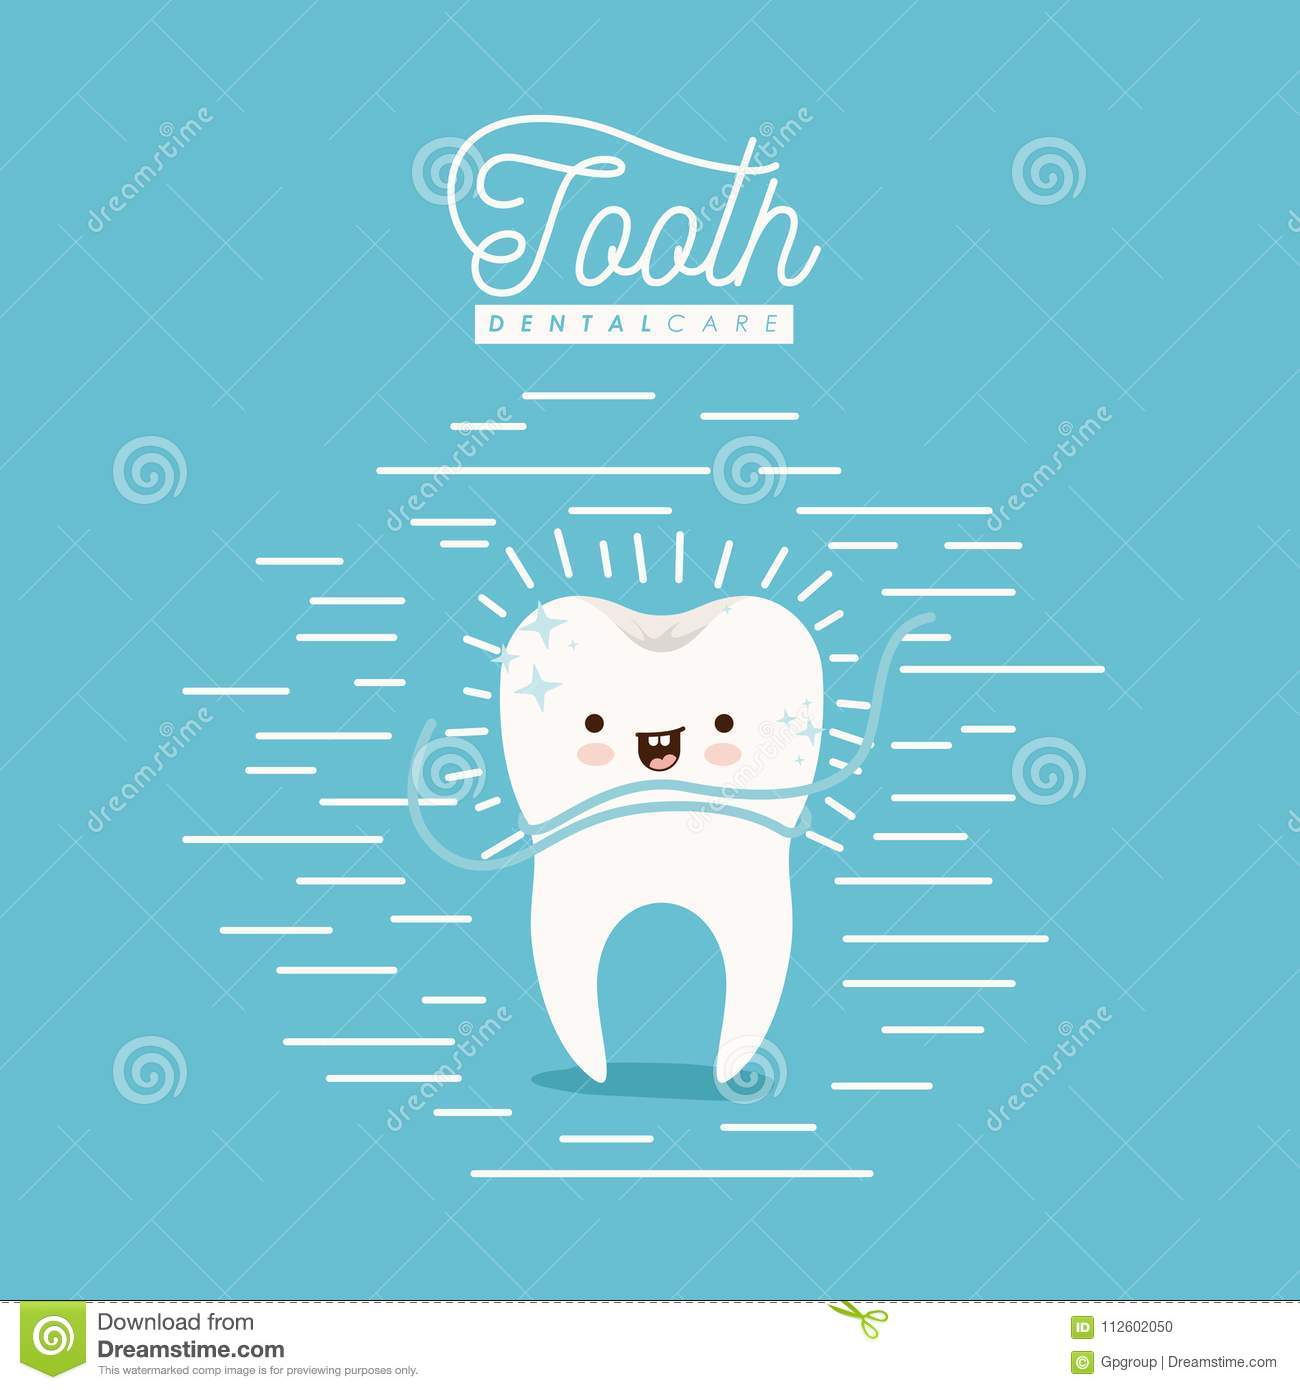 Kawaii caricature clean tooth dental care with floss smiling expression on color poster with lines